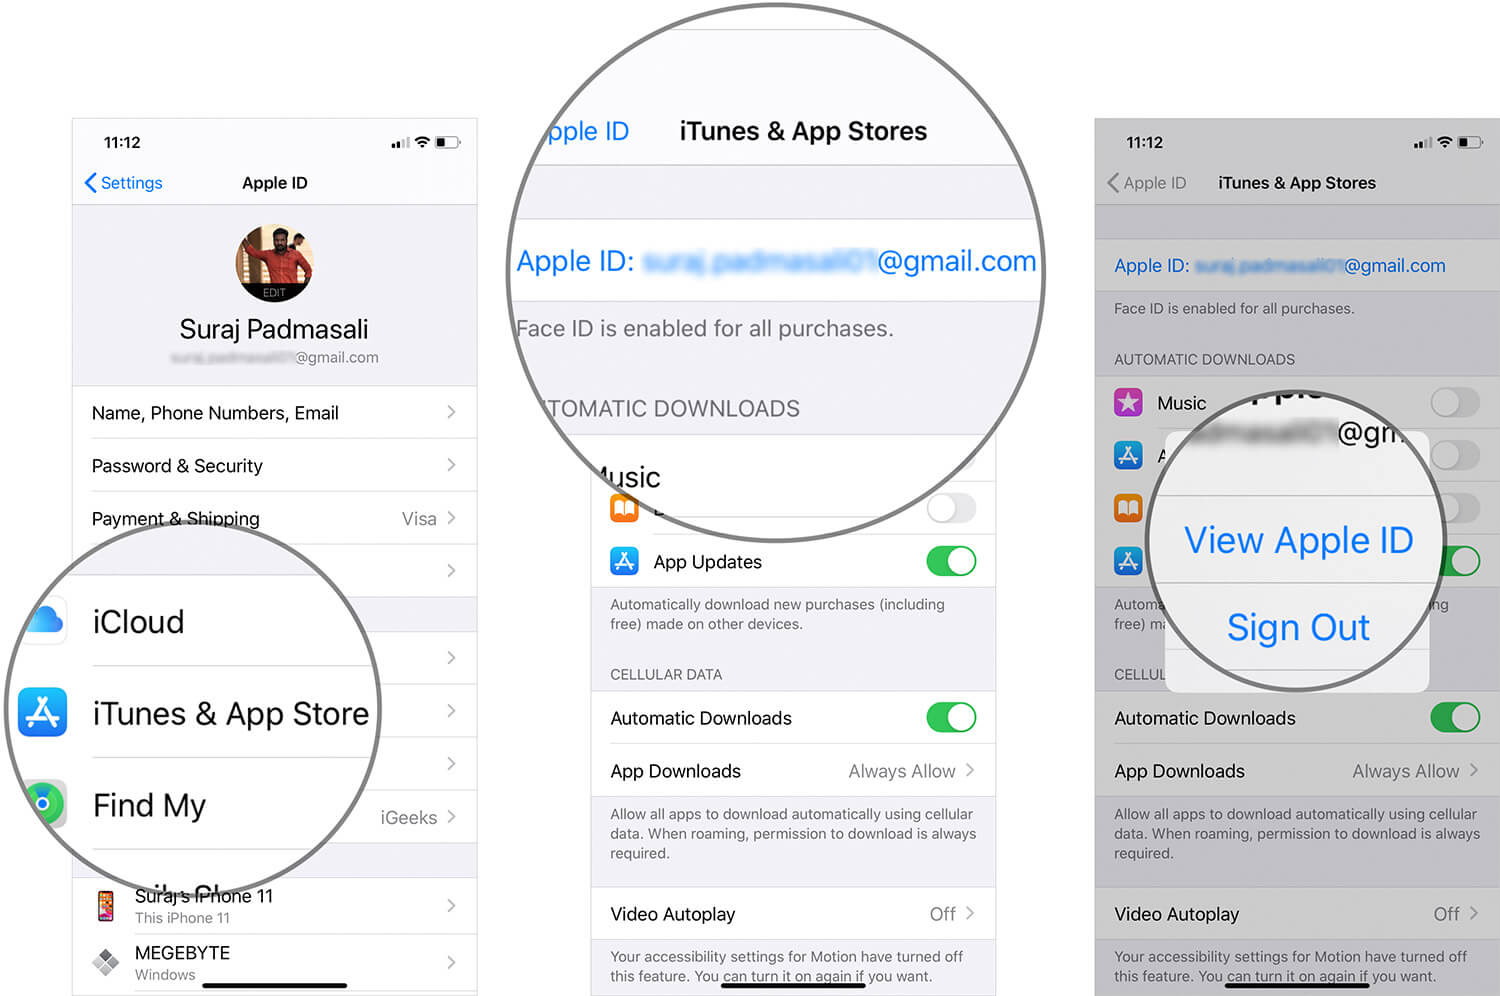 Tap on iTunes & App Store then Tap on Apple ID and Tap on View Apple ID on iPhone